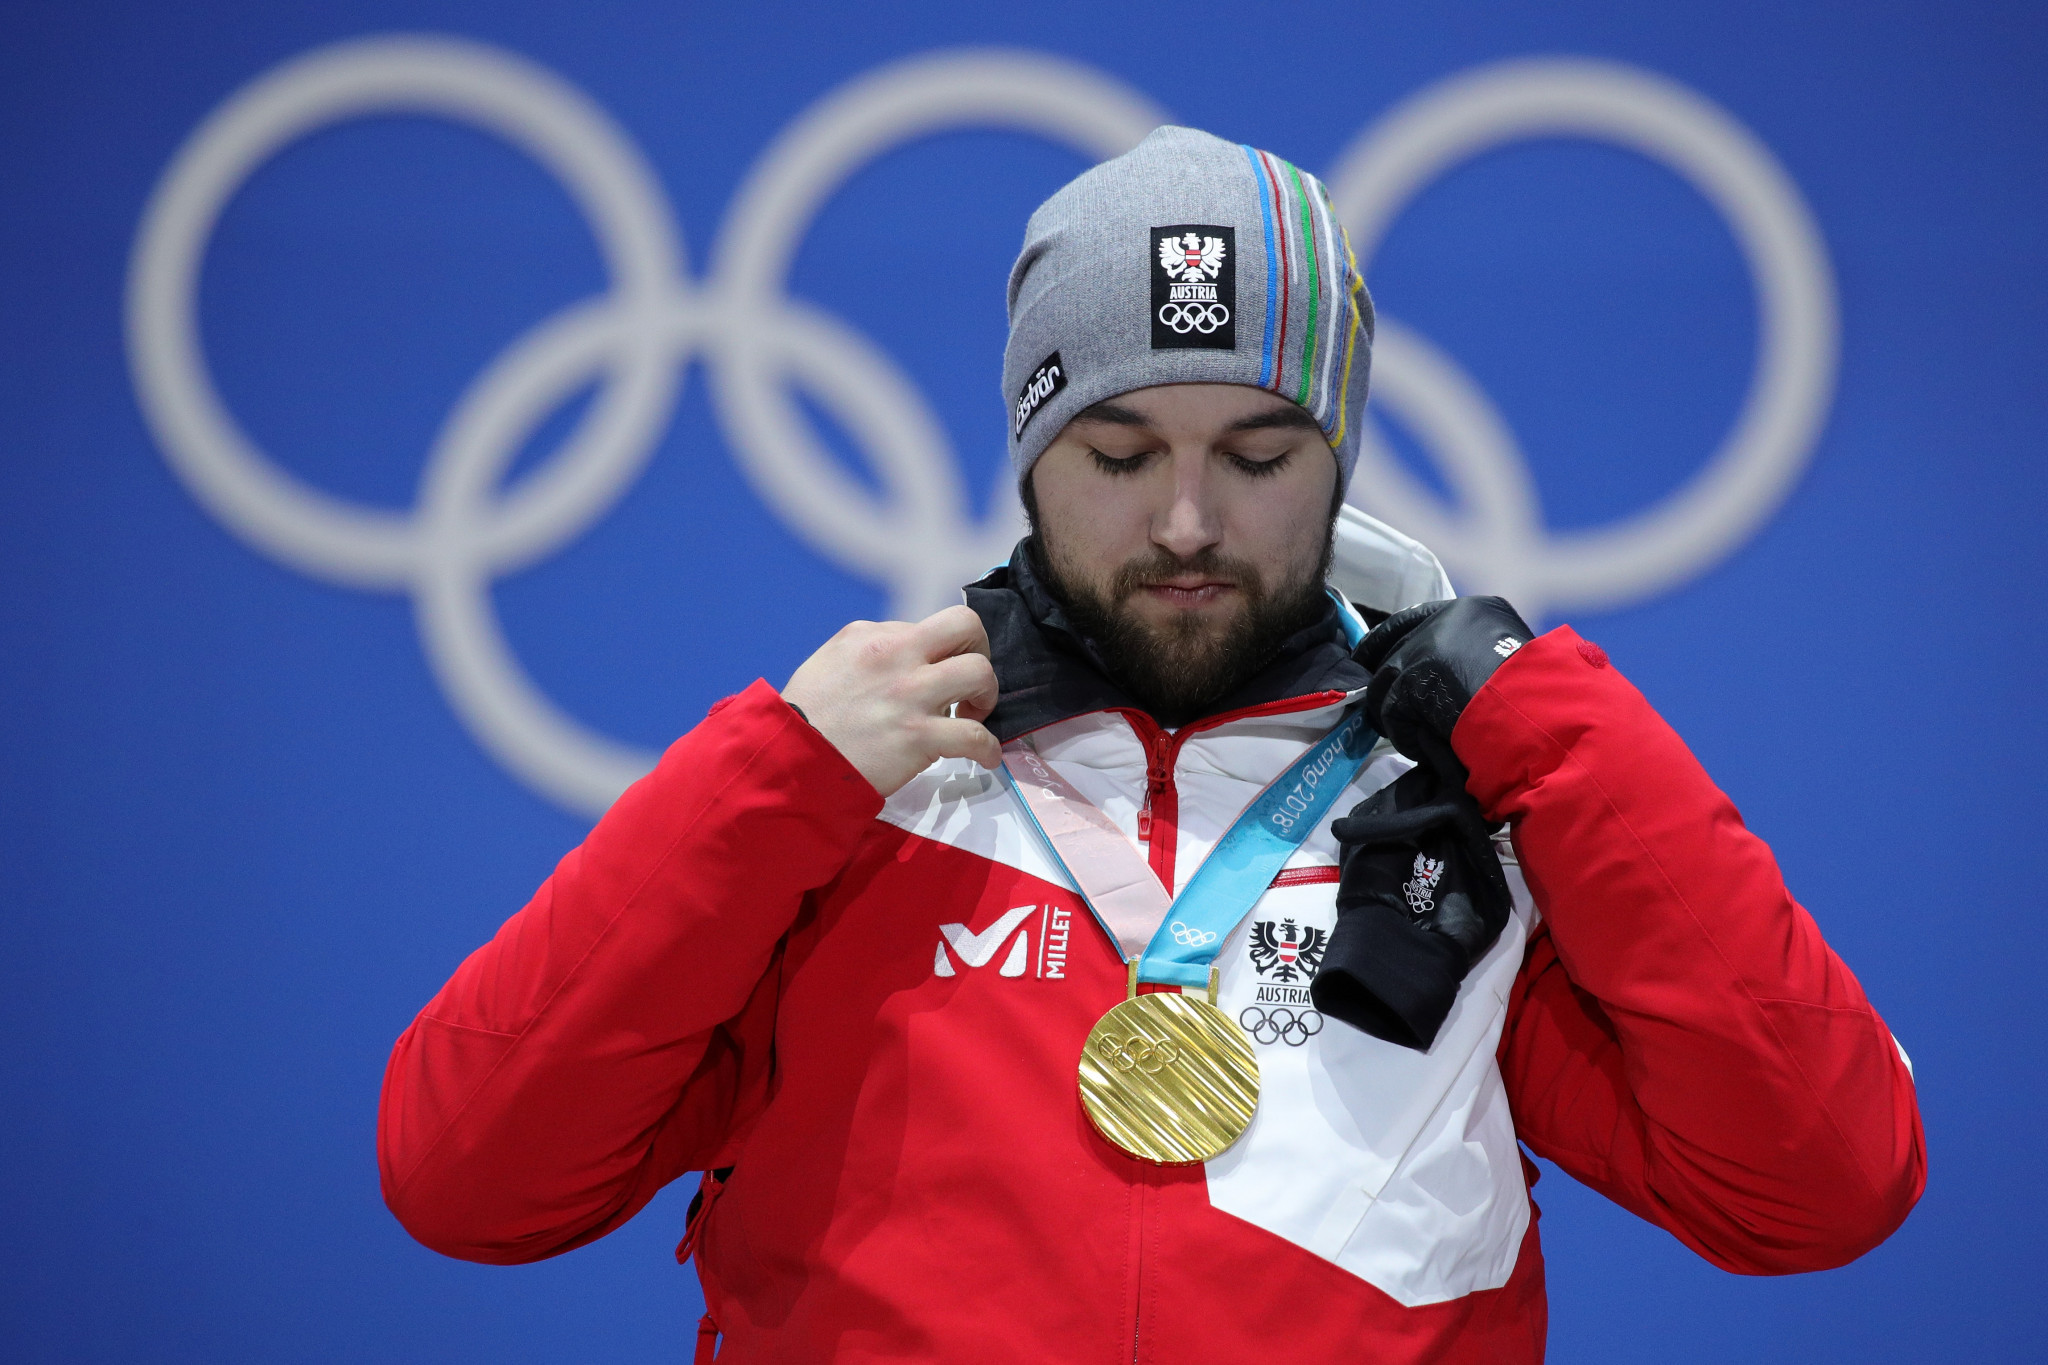 David Gleirscher won a surprise men's luge gold medal for Austria at the Pyeongchang 2018 Winter Olympics in South Korea in February ©Getty Images